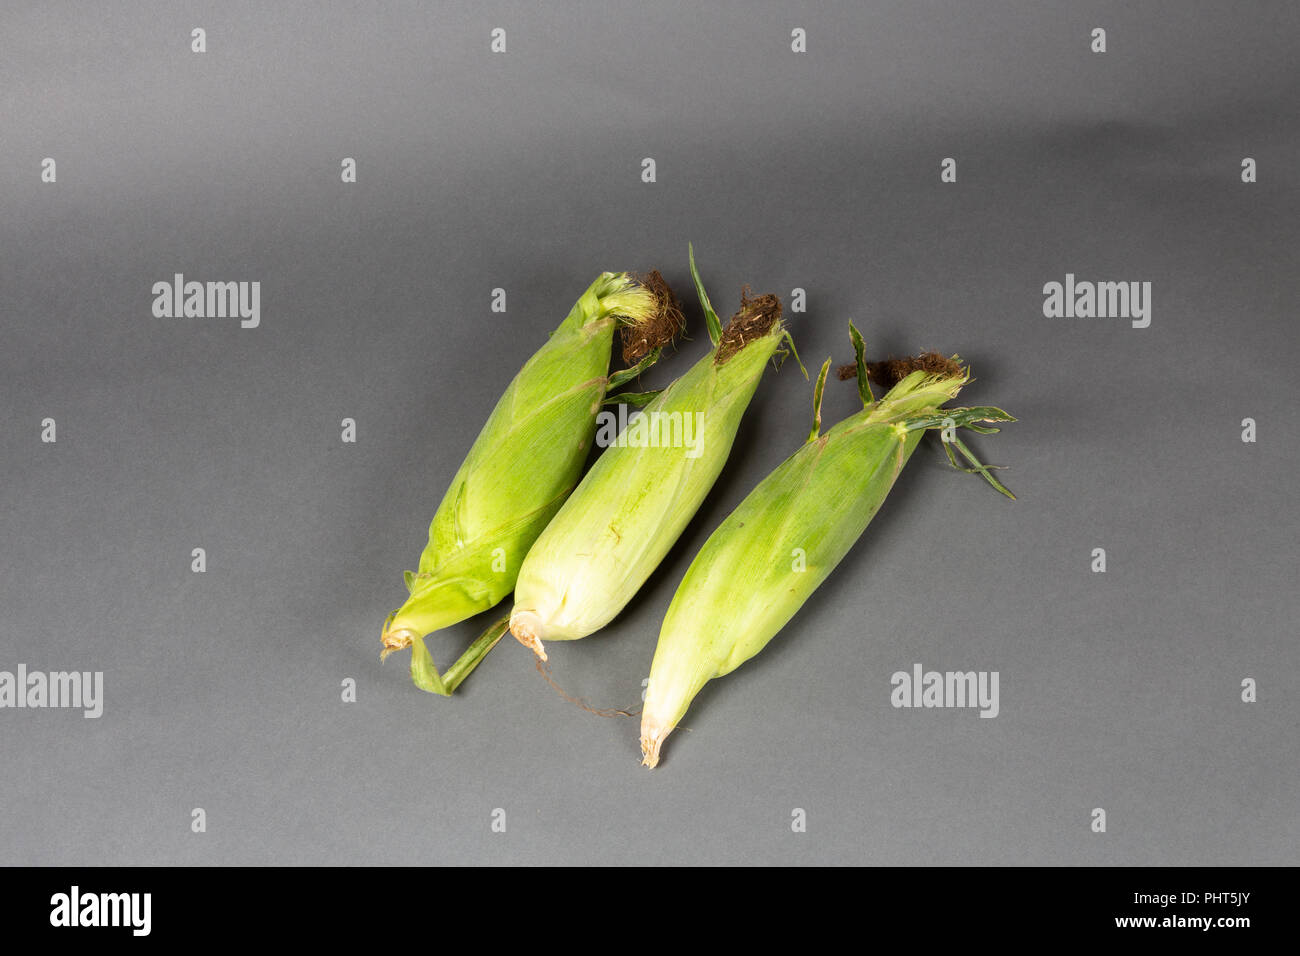 Three Ears of Corn in Husks on a Grey Background - Stock Image